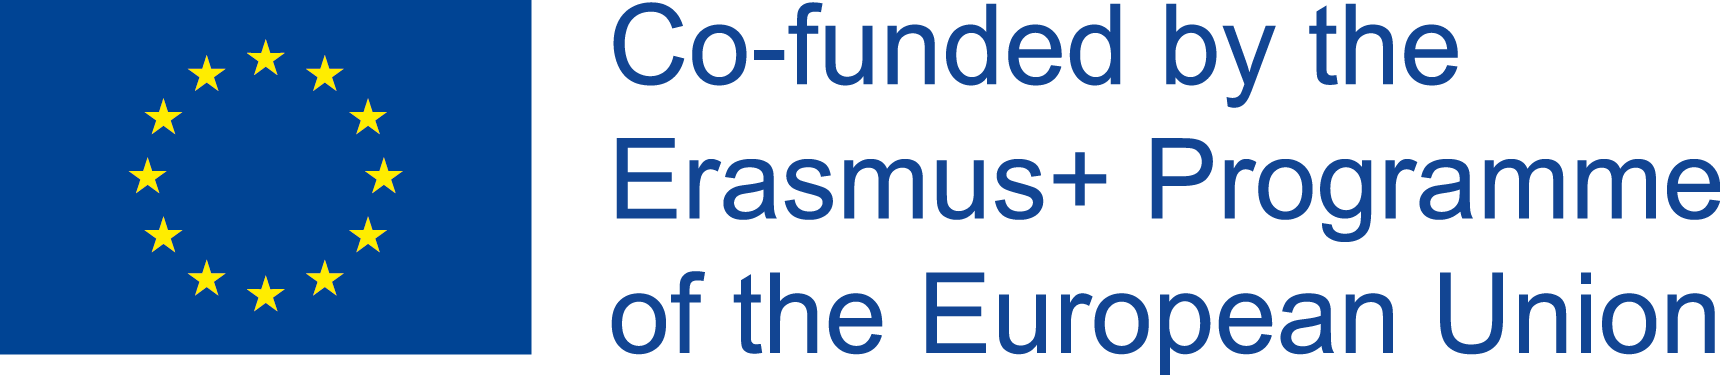 "The EU logo and the text ""co-funded by the ERASMUS+ Programme of the European Union"